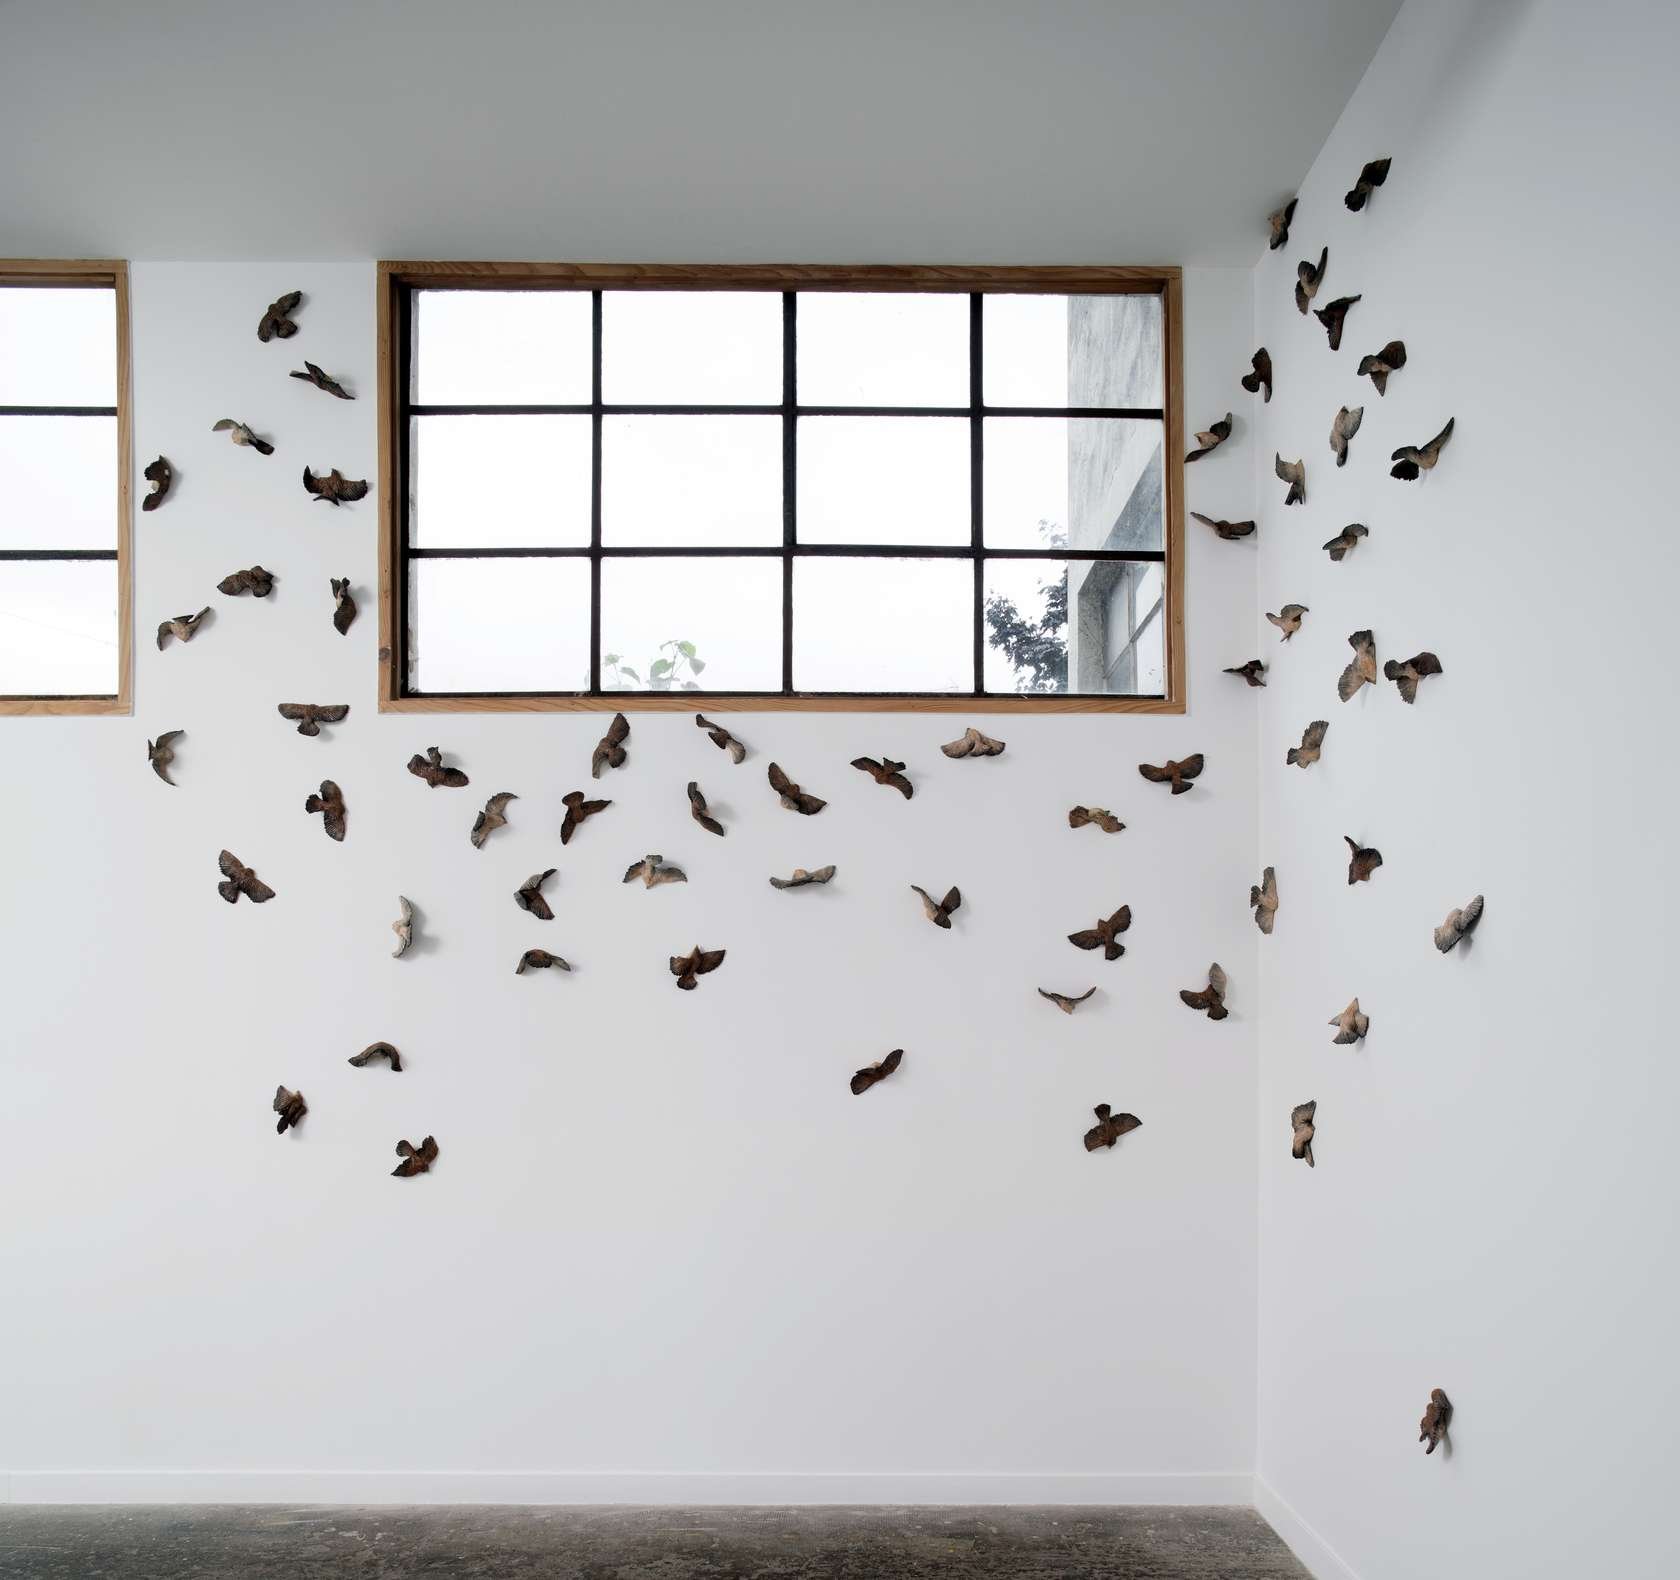 Sébastien Gouju, For the Birds, 2017 Ensemble de 55 céramiques émailléesDimensions variables  Chaque œuvre / Each work approx  9 × 22 × 9 cm / 3 1/2 × 8 5/8 × 3 1/2 in.